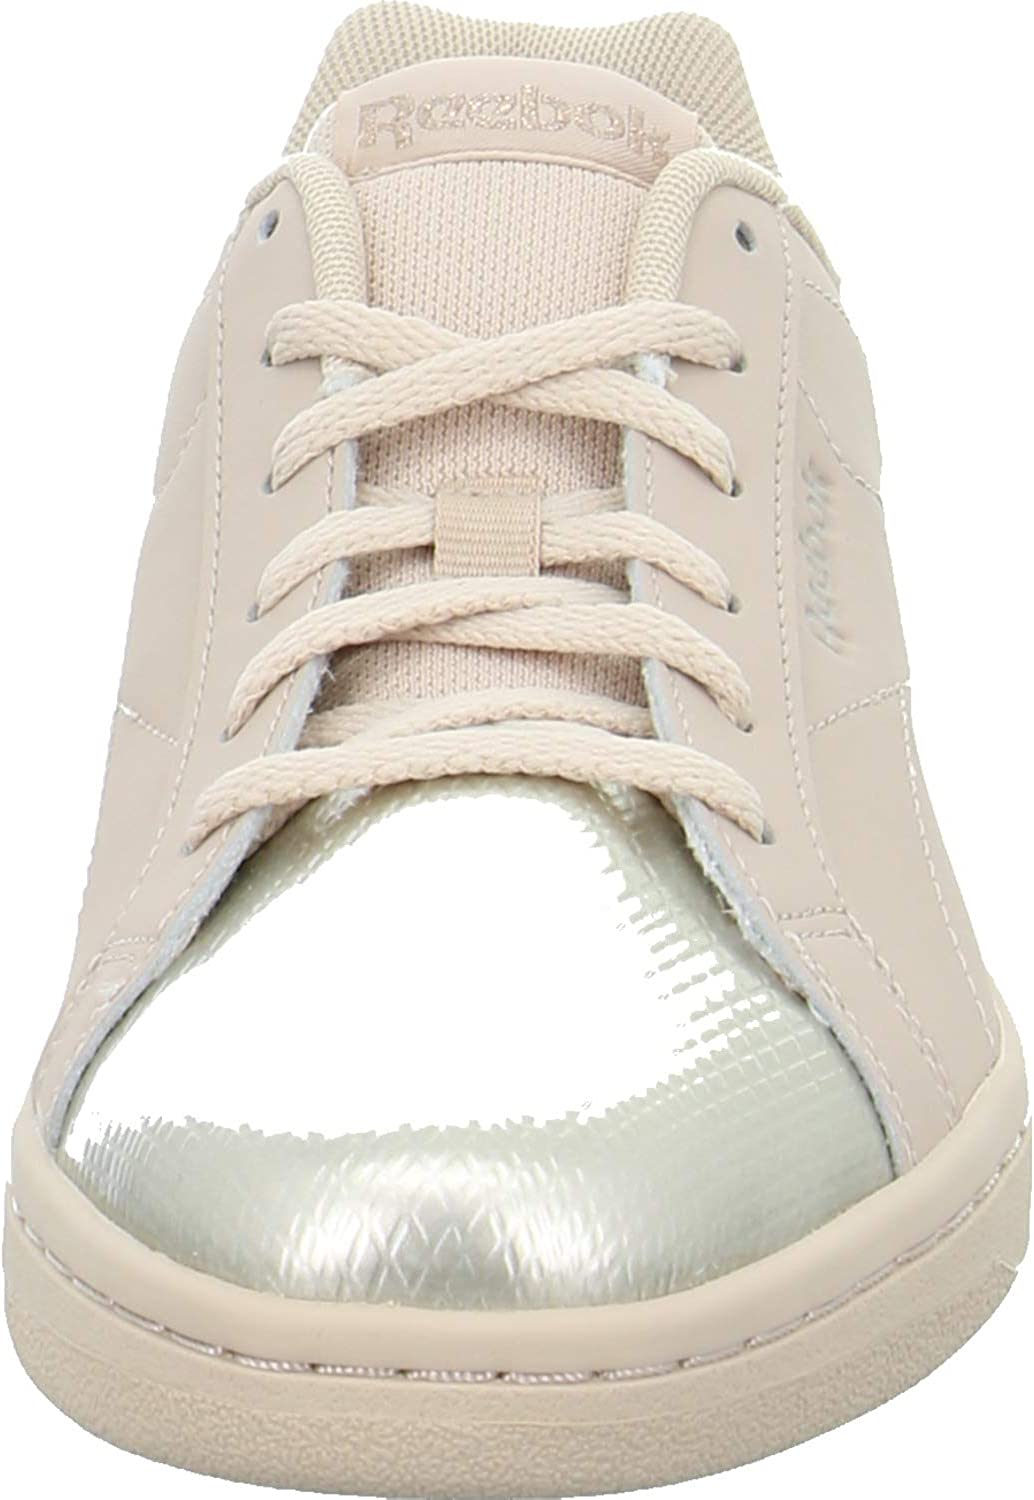 Reebok Royal Complete CLN, Chaussures de Fitness Femme Multicolore Bare Beige Rose Gold 000